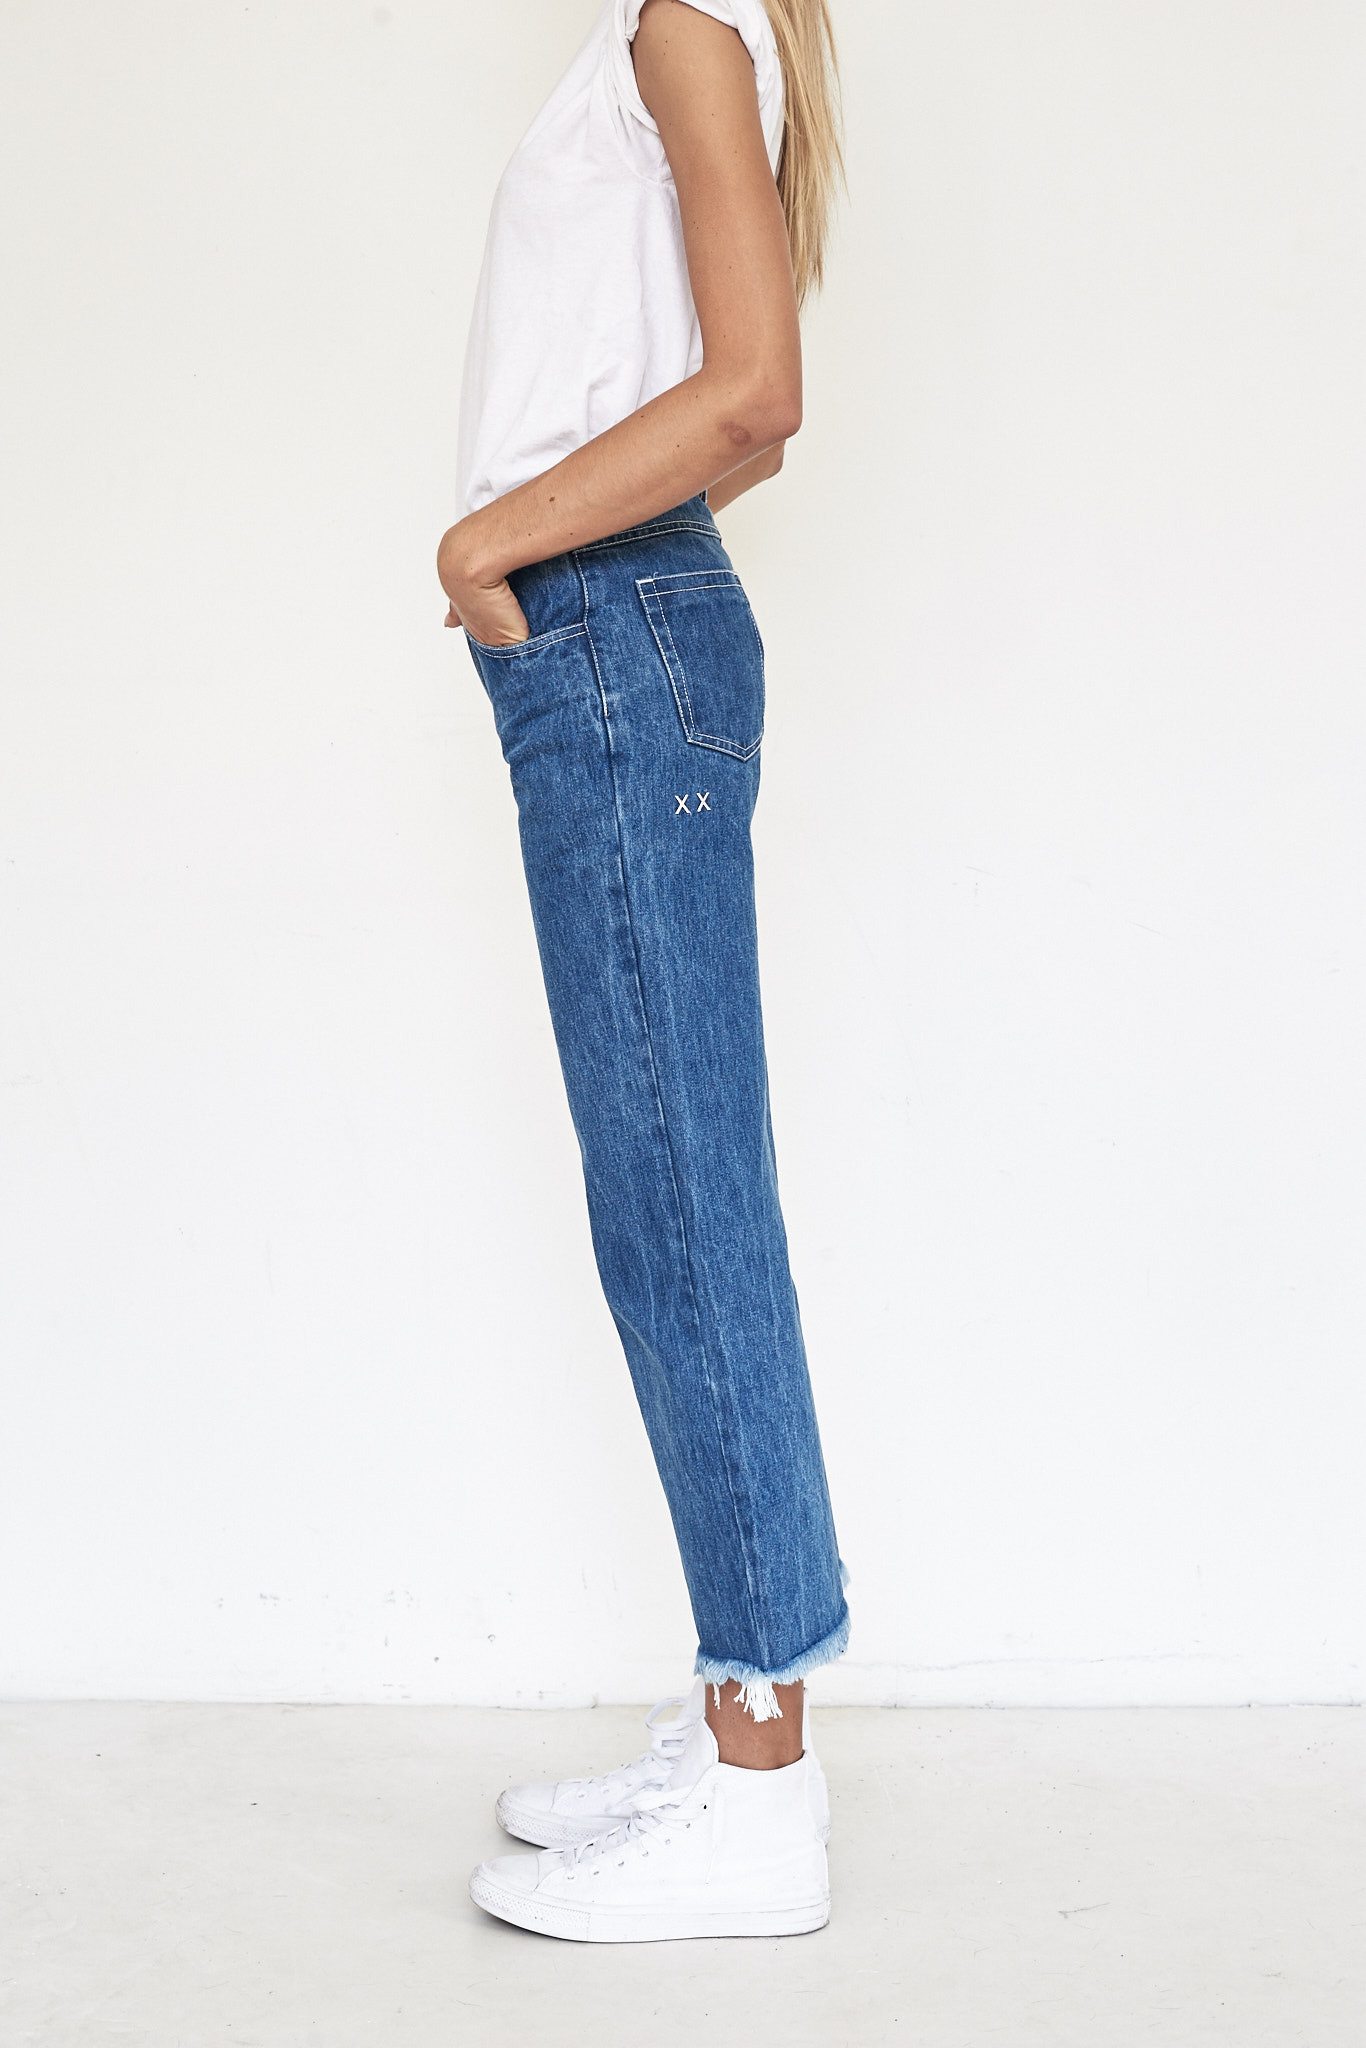 Sandy Liang Cotton Grandpa Jeans Garmentory